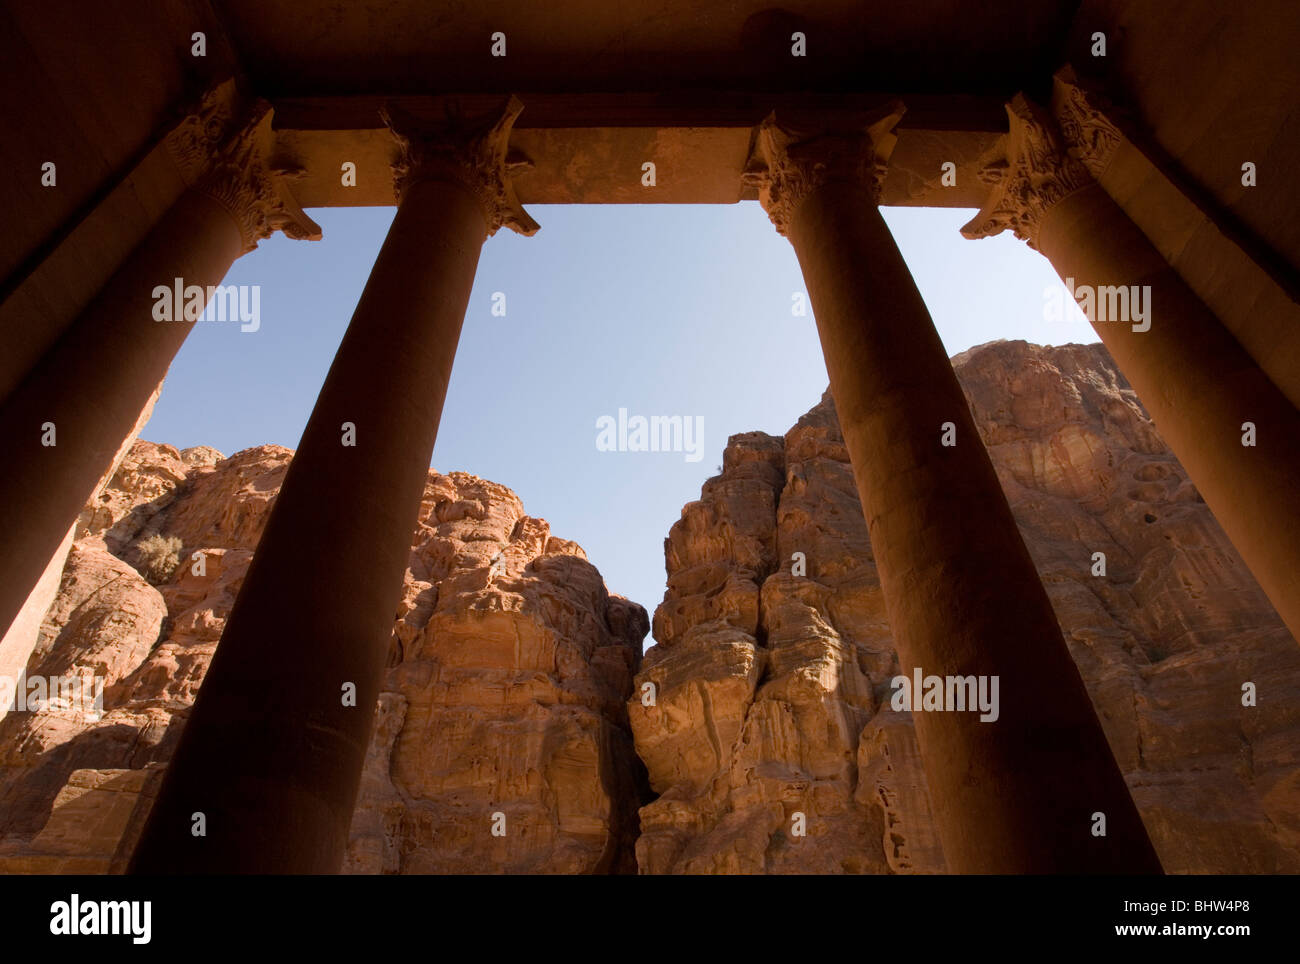 View of columns from inside the Treasury or Al Khaznah looking towards the Al Siq canyon in the ancient city of - Stock Image